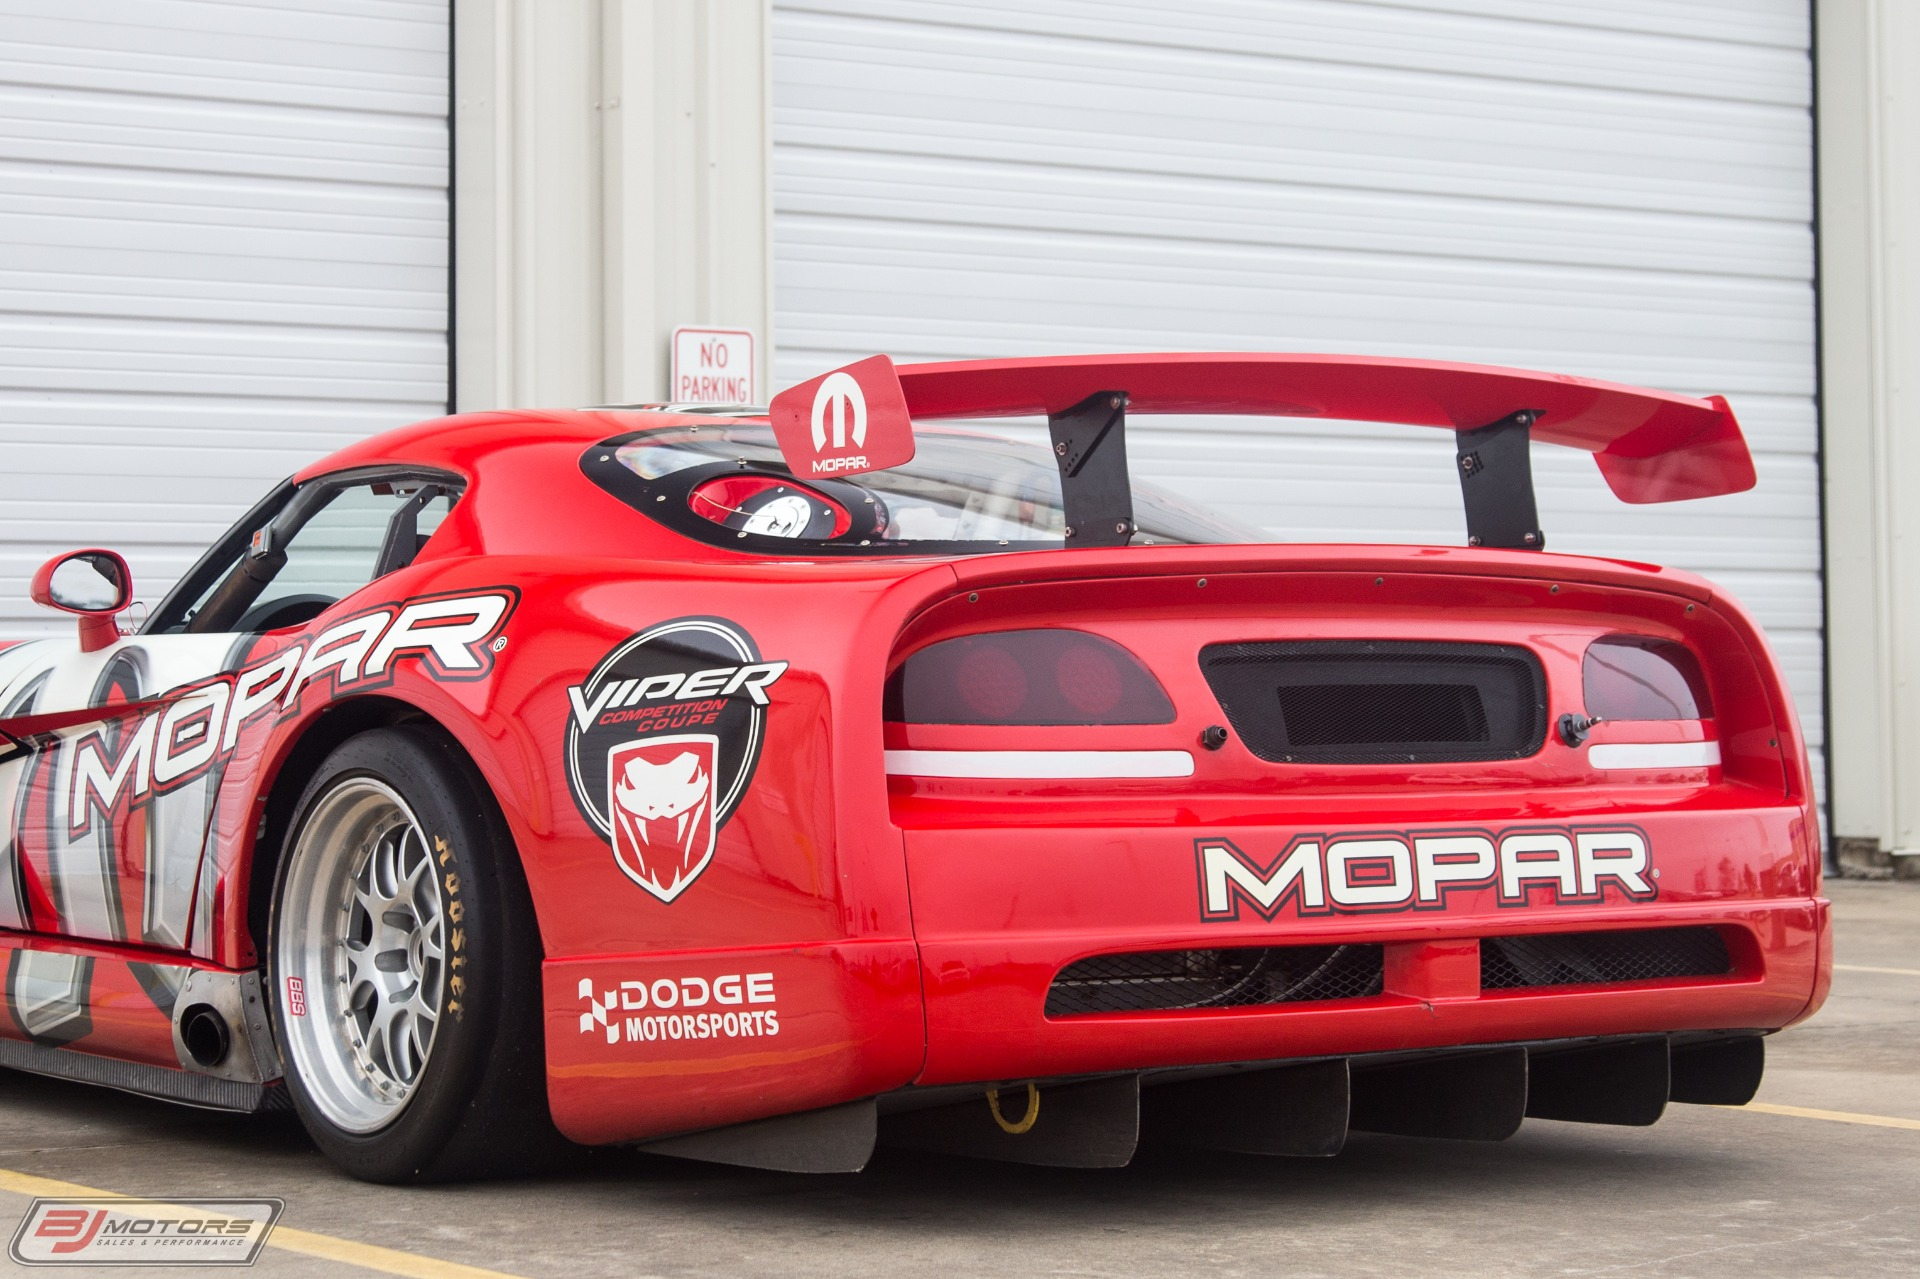 Used 2002 Dodge Viper Competition Coupe For Sale 98 500 Bj Motors Stock 00000004